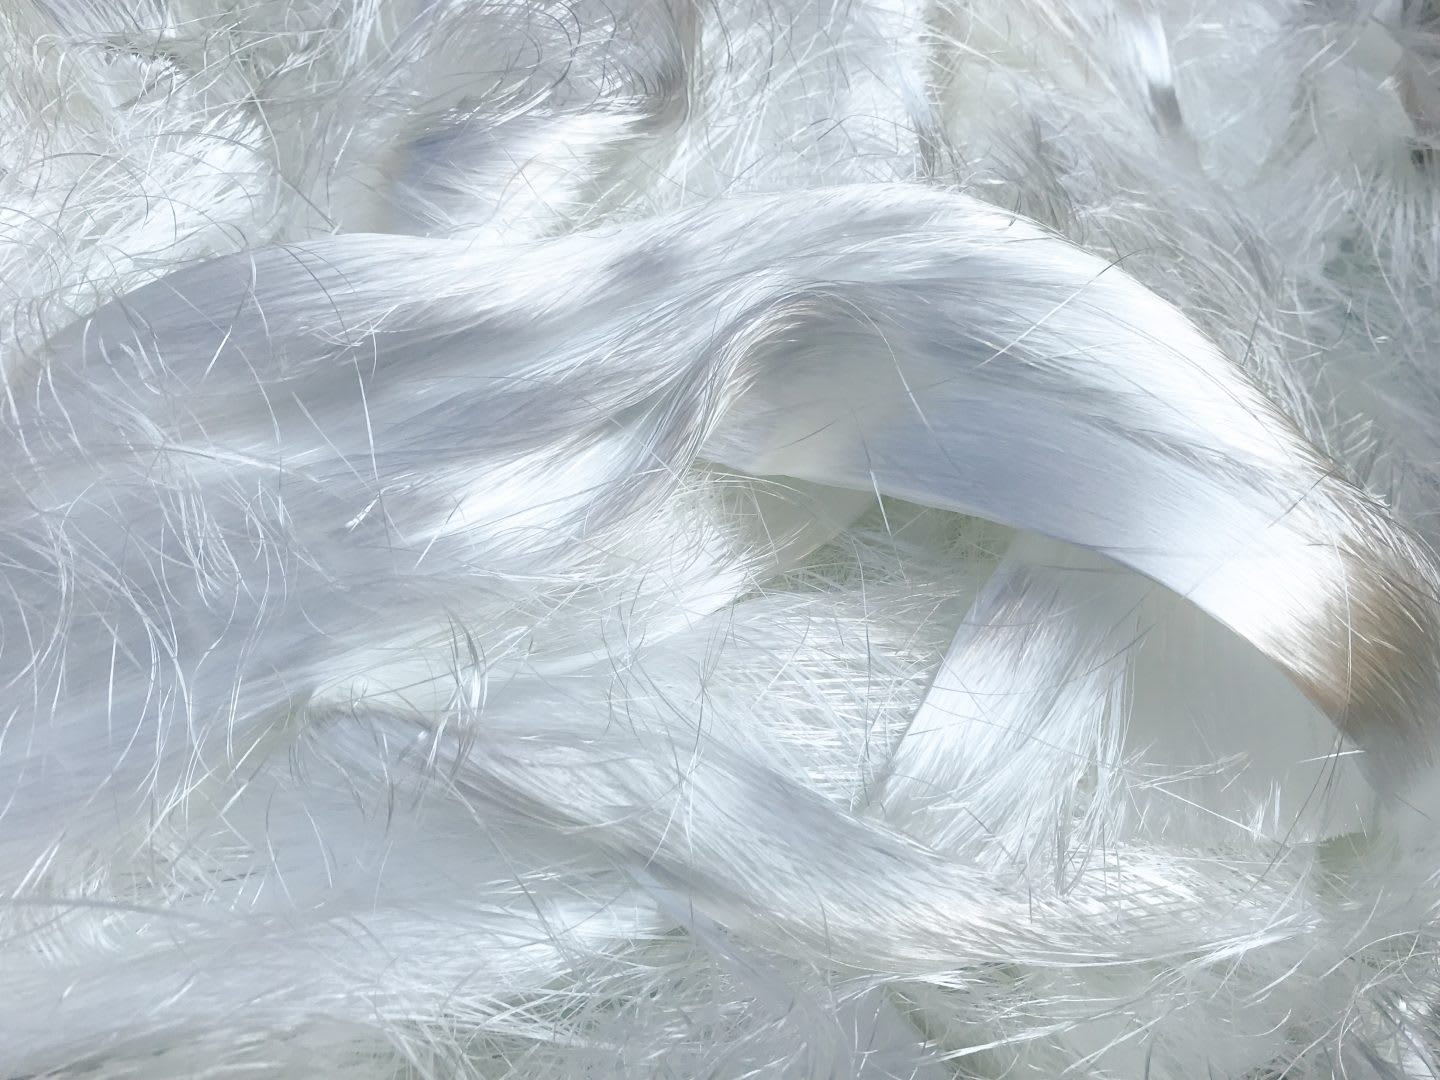 White polyester fibers tangled together, plastic, material, innovation, sustainability, mono-material, adidas